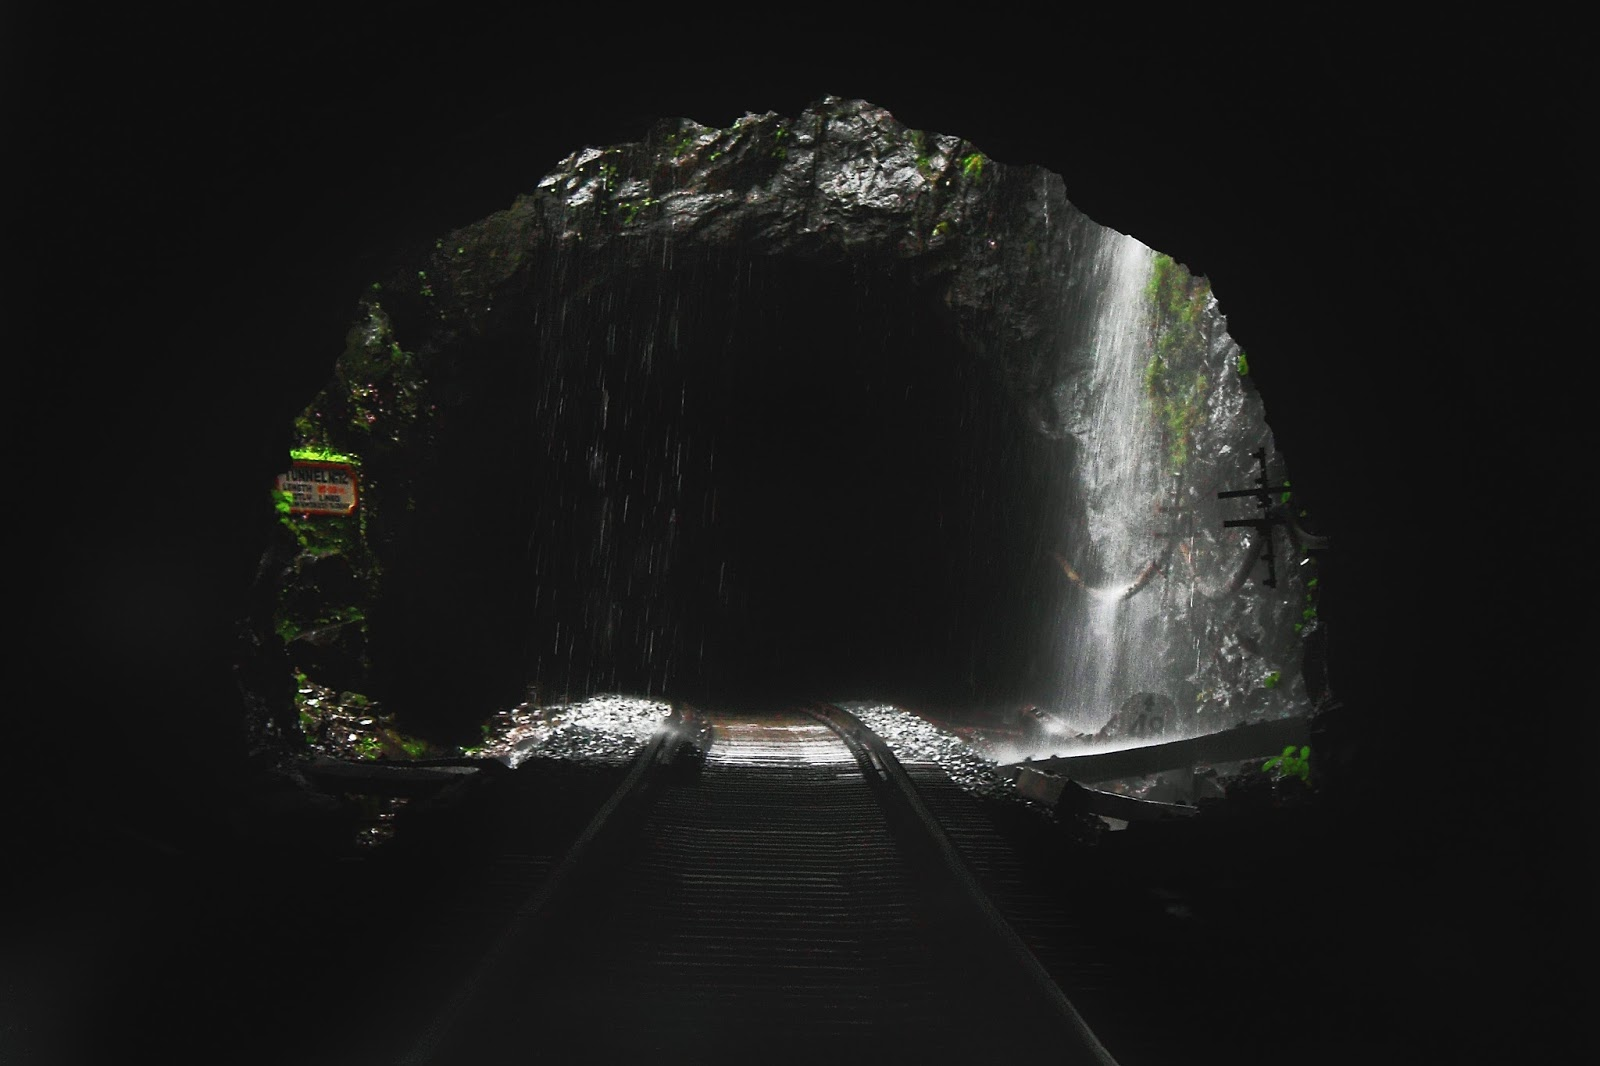 Tunnel near Dudhsagar